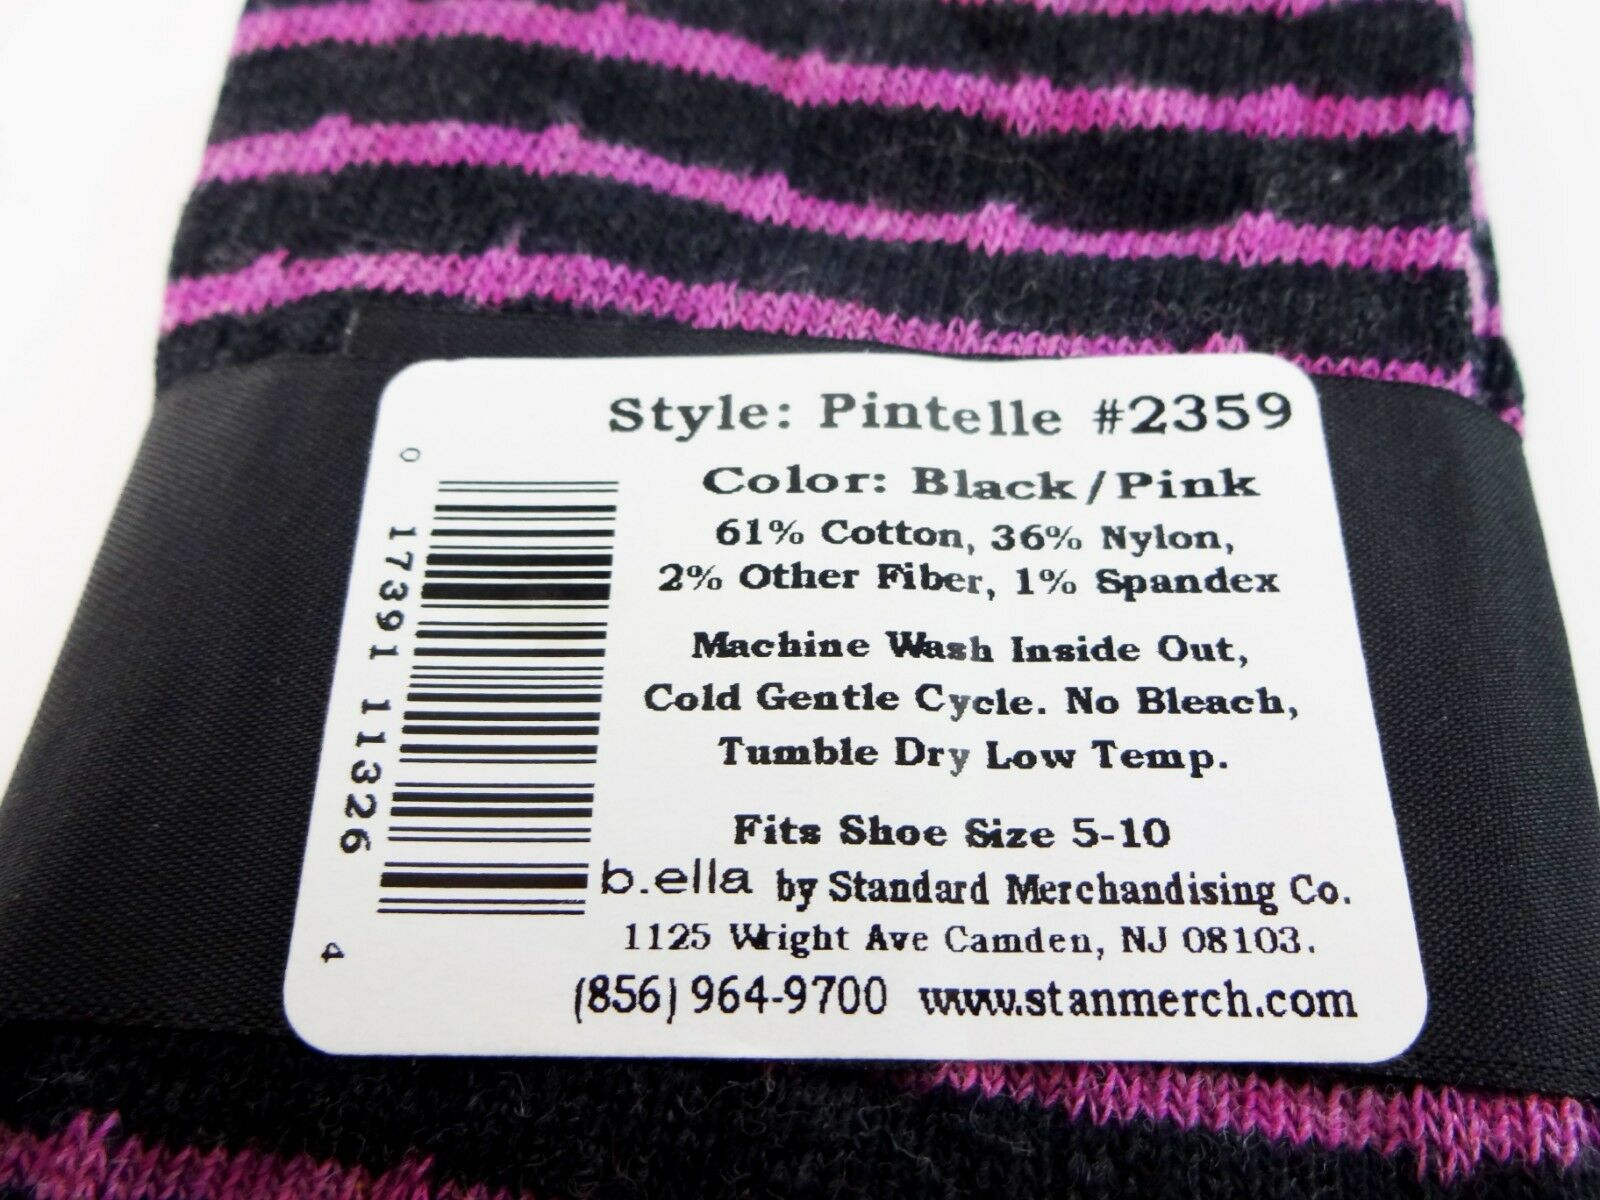 Purple White Socks Ladies Crew Length Hosiery Sizes 9 to 11 B.ella Larissa